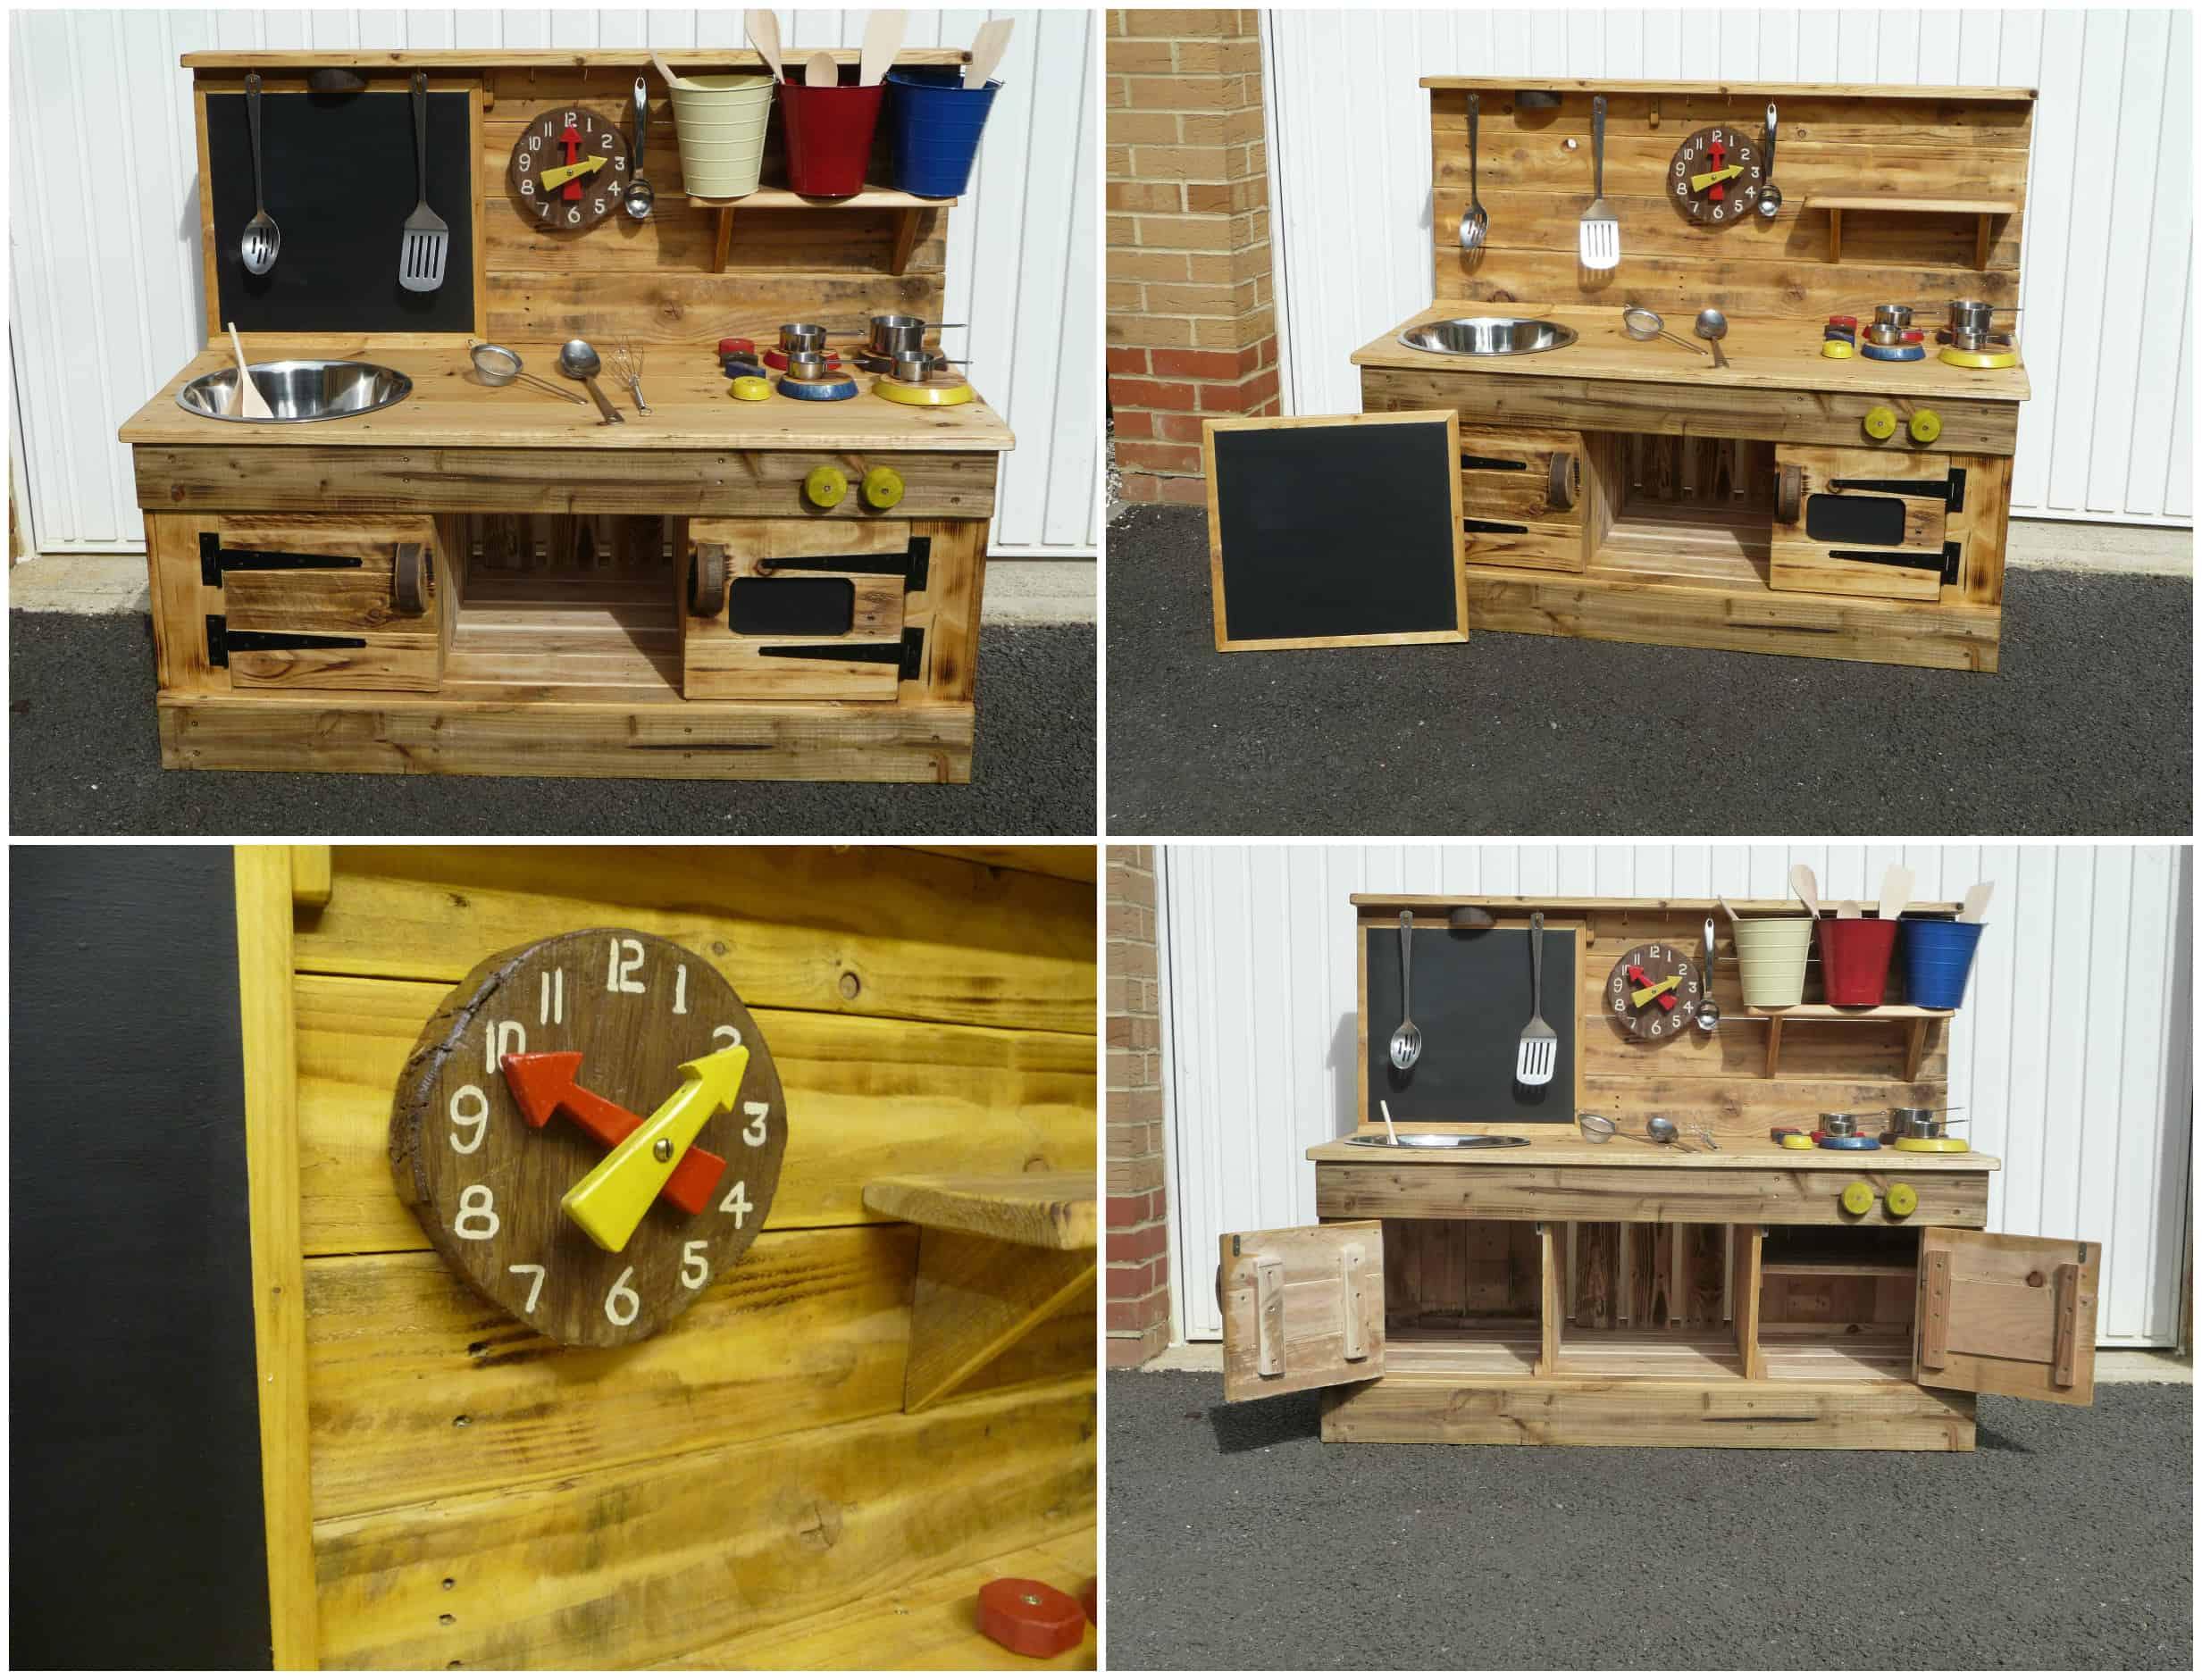 Pallet Educational Play Kitchens • Pallet Ideas • 1001 Pallets